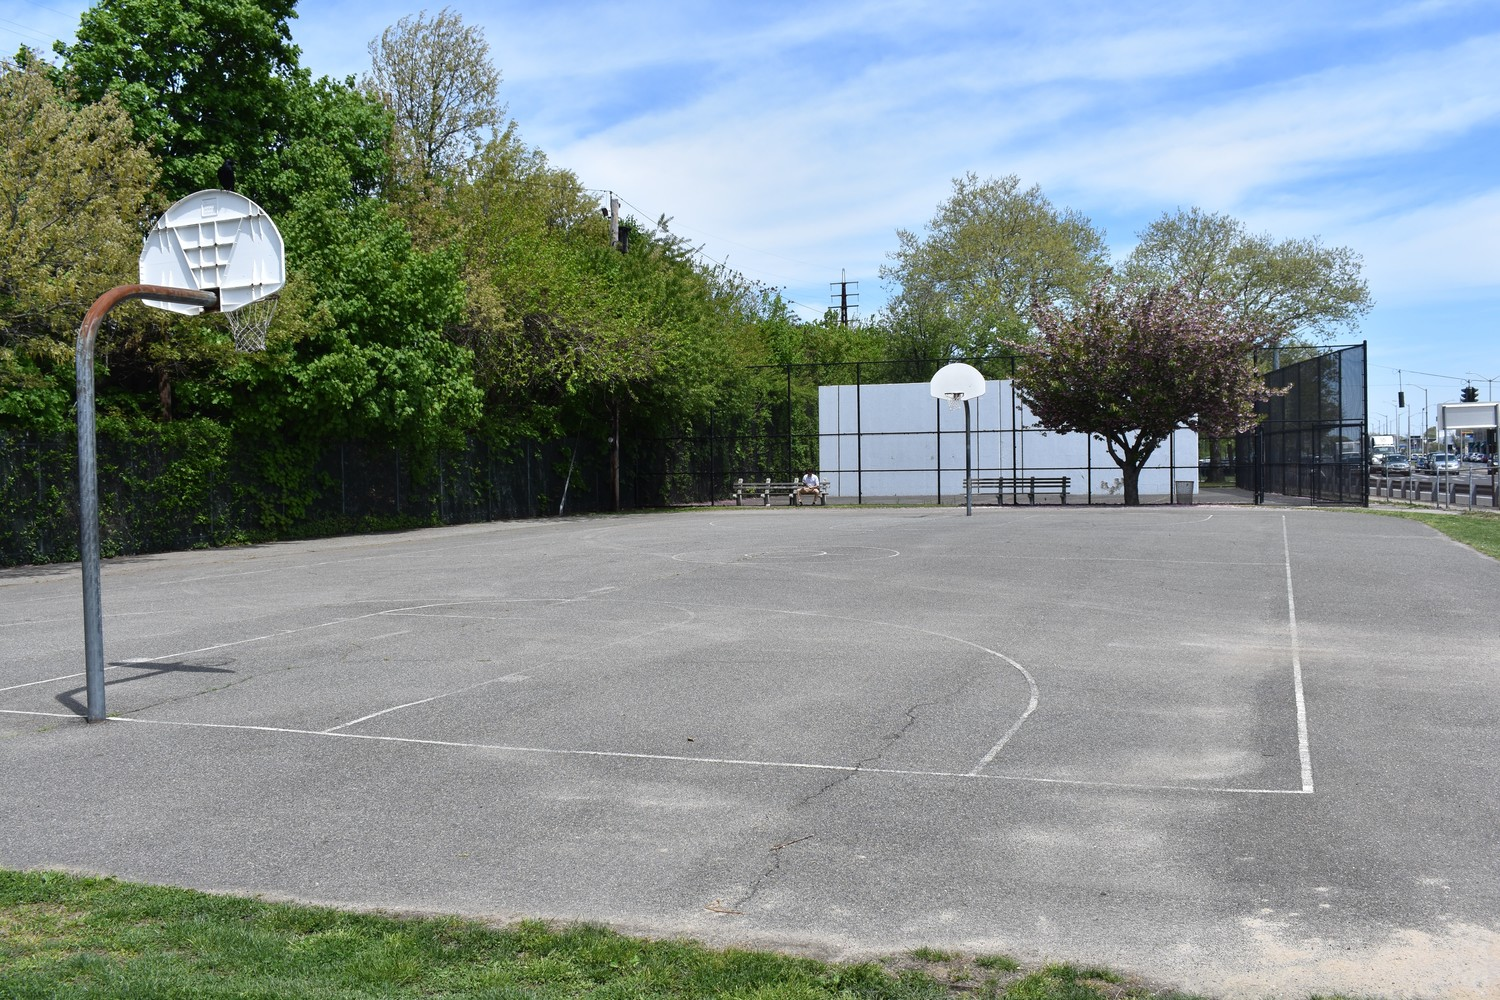 The playground would replace the basketball and handball courts that currently occupy the space.